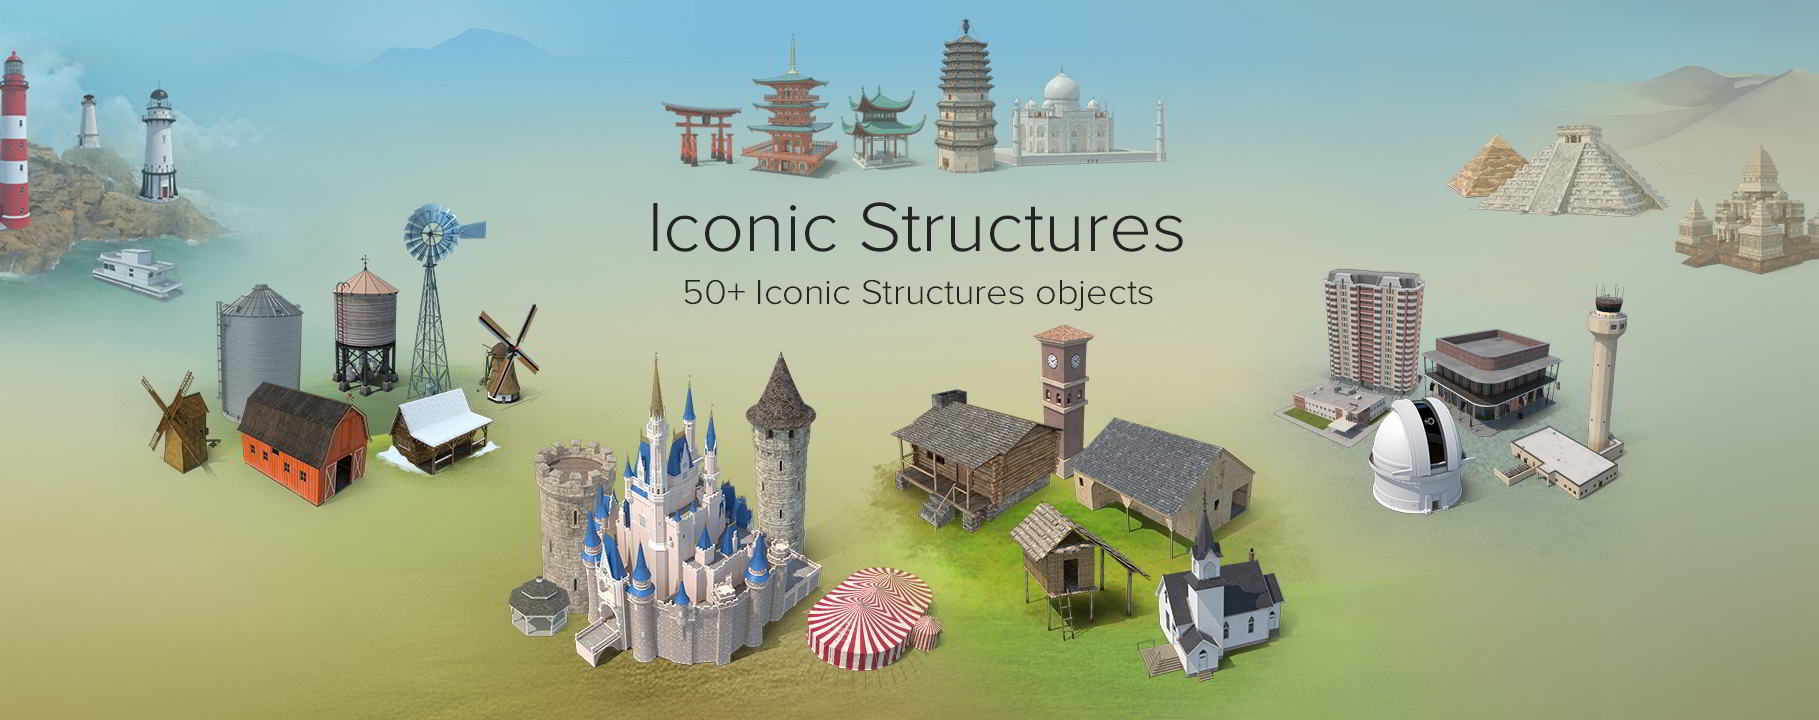 PixelSquid – Iconic Structures Collection free download